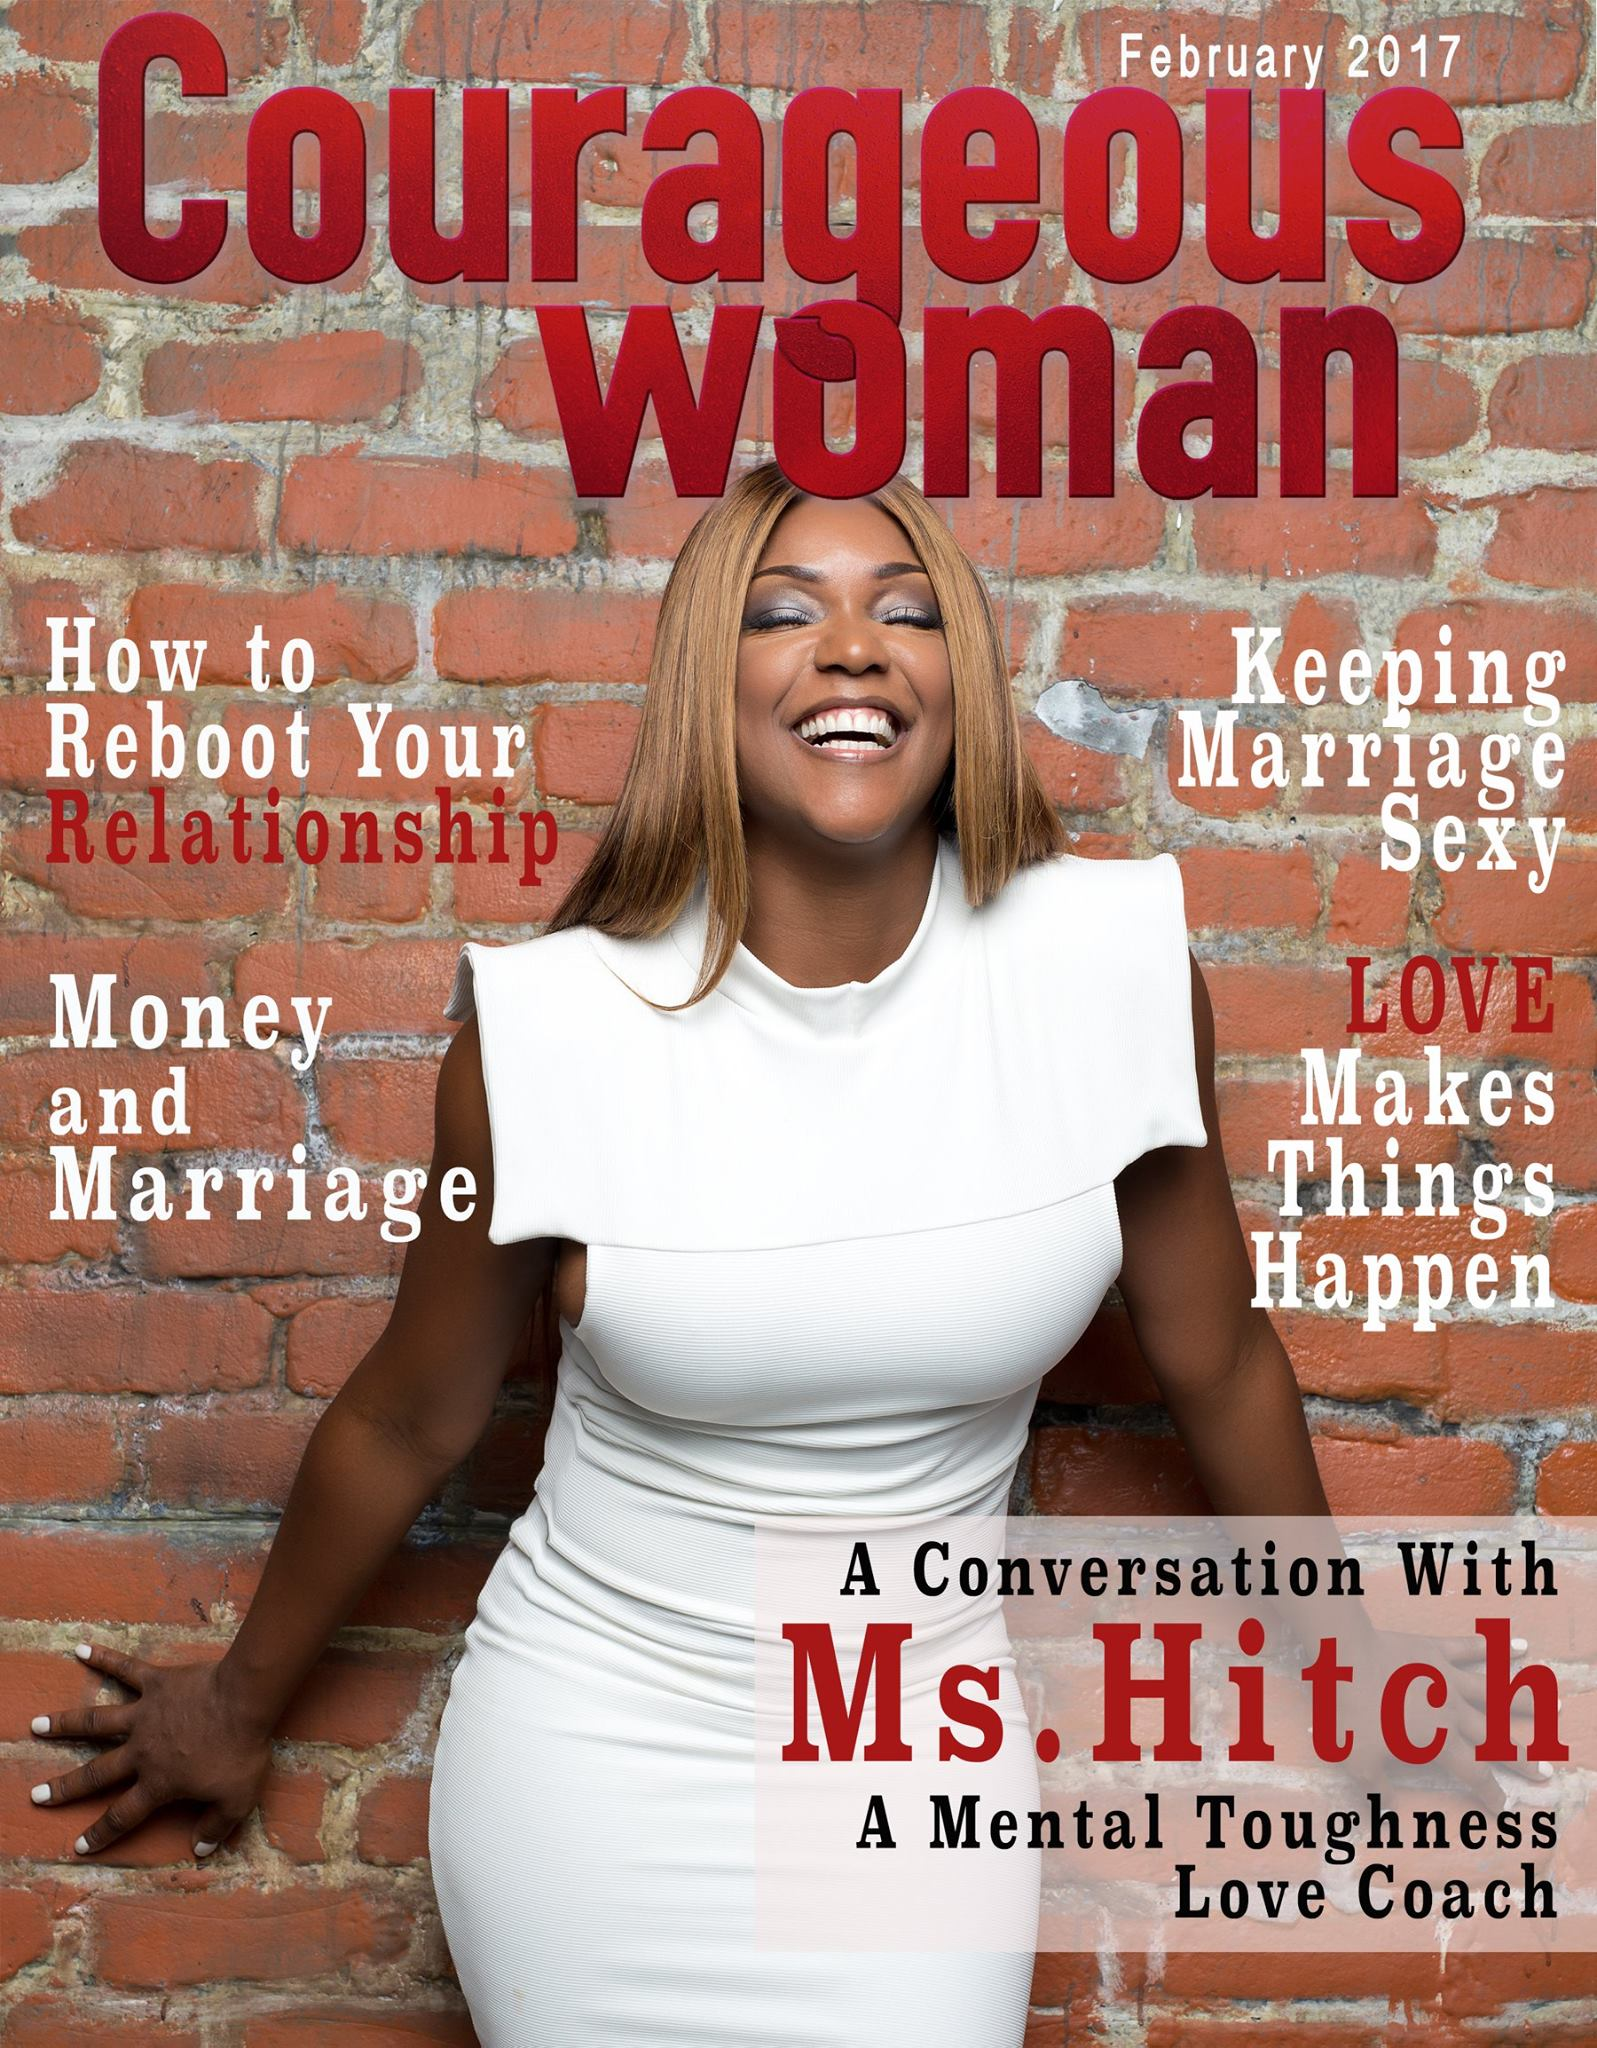 A Conversation with Ms. Hitch: The Mental Toughness Love Coach